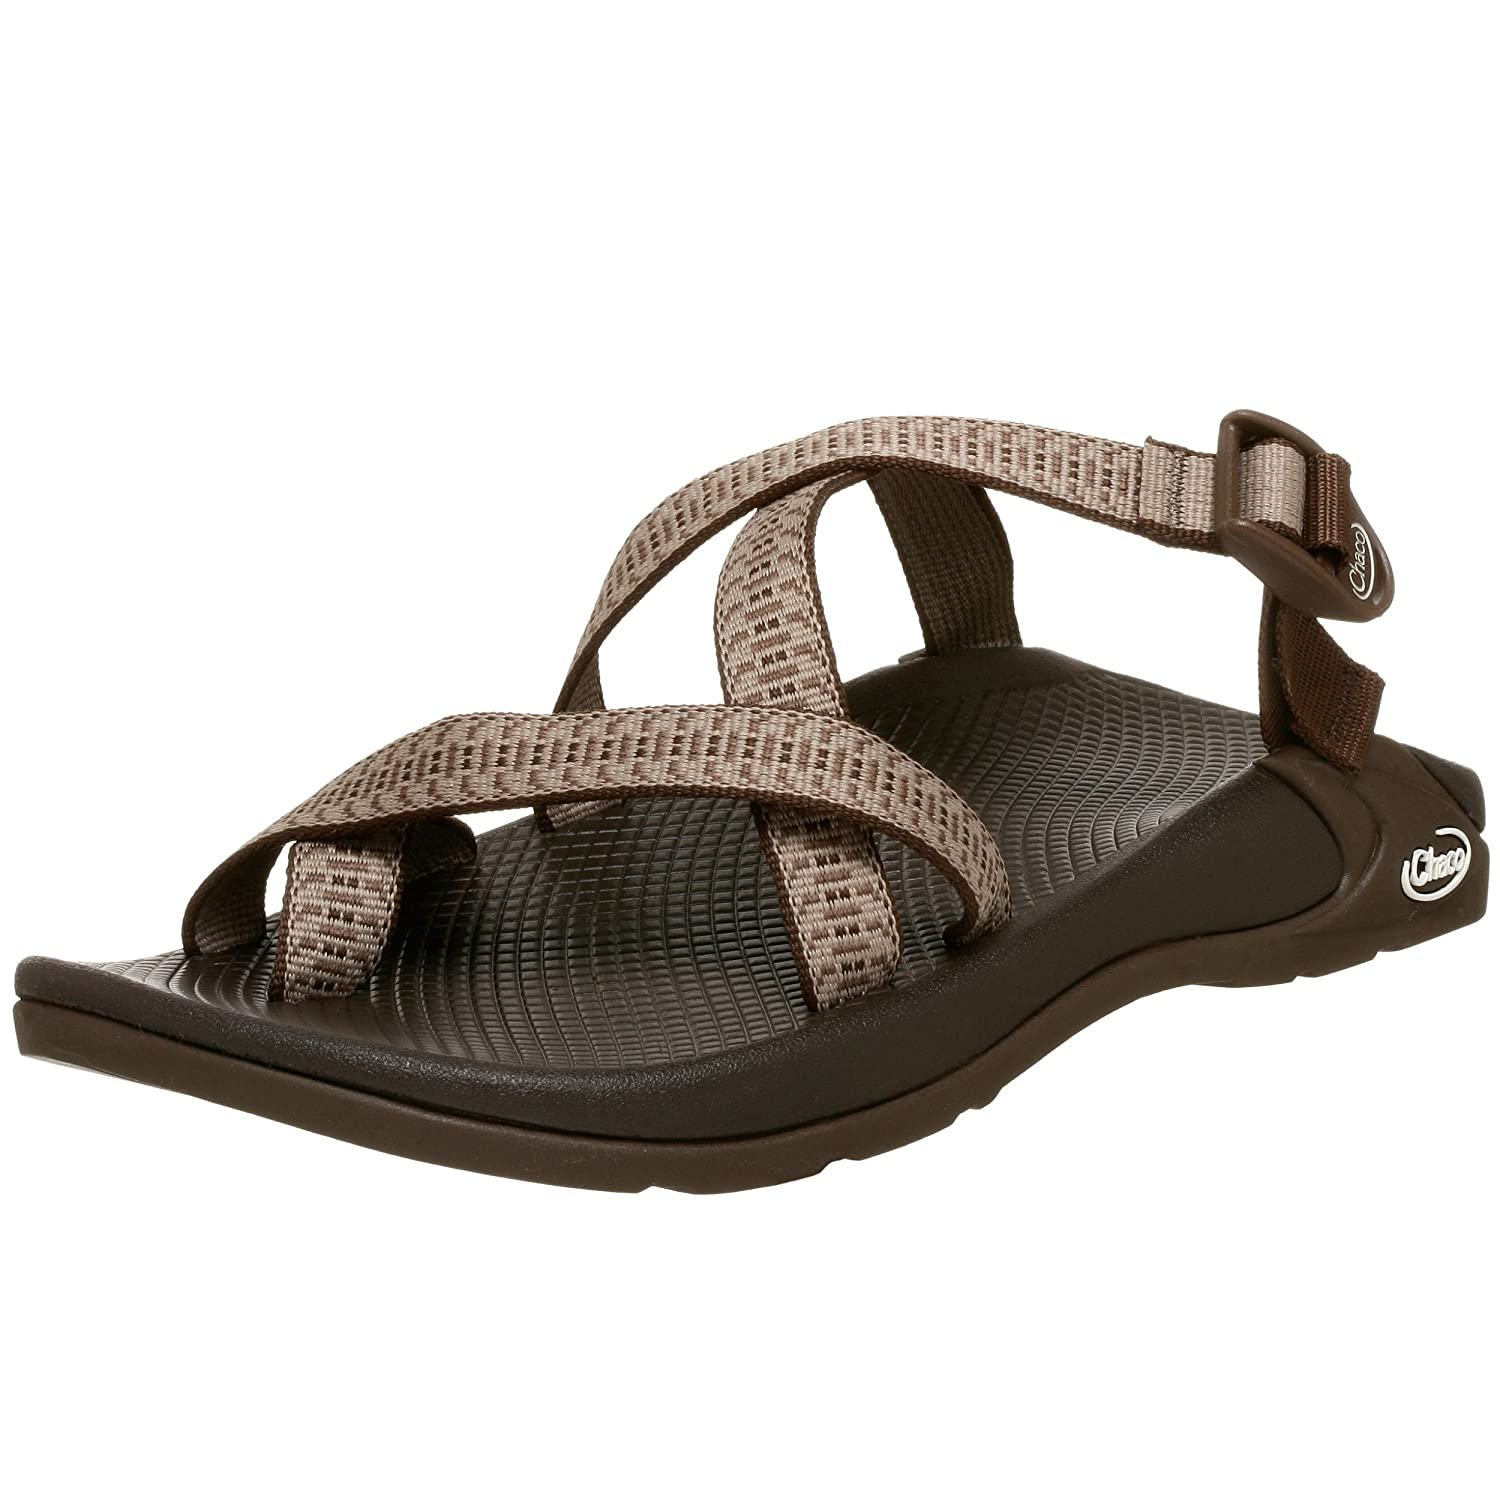 55bf83215fd3 Chaco cloud wide width shoes jpg 1500x1500 Brown chacos